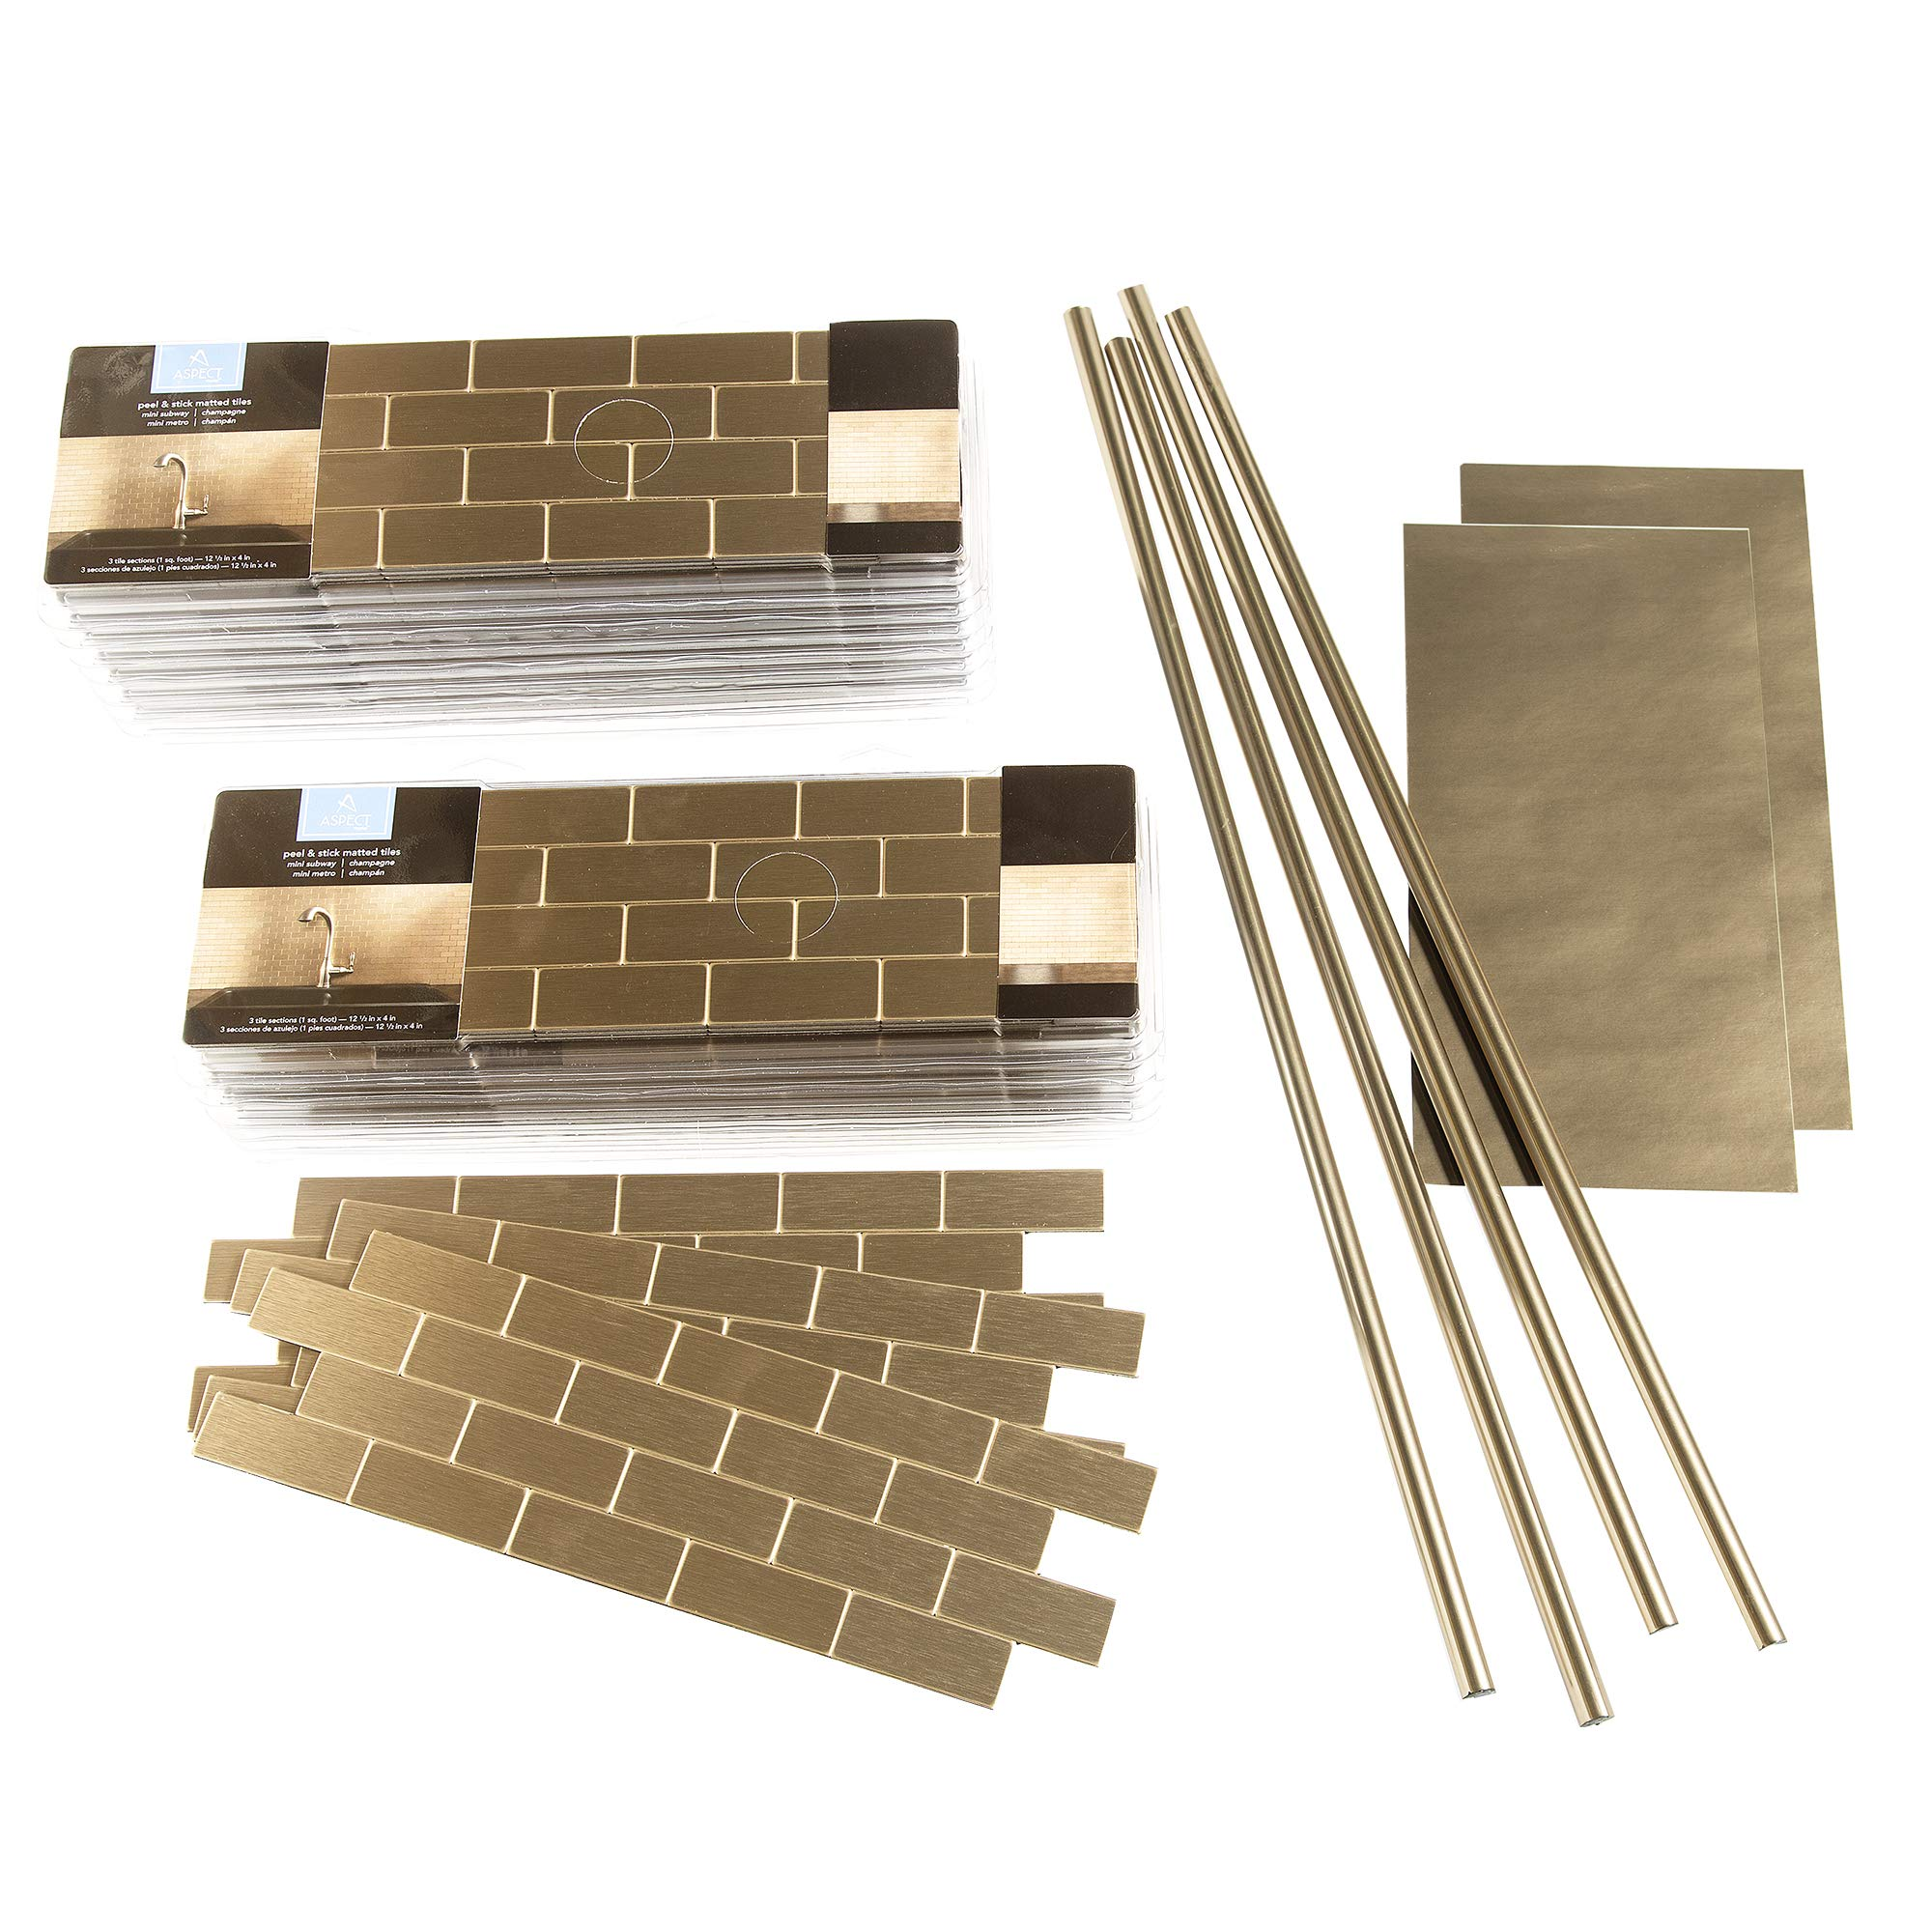 Aspect Peel and Stick Backsplash 12inx4in Subway Champagne Matted Metal Tile 15 Sq Ft Kit for Kitchen and Bathrooms